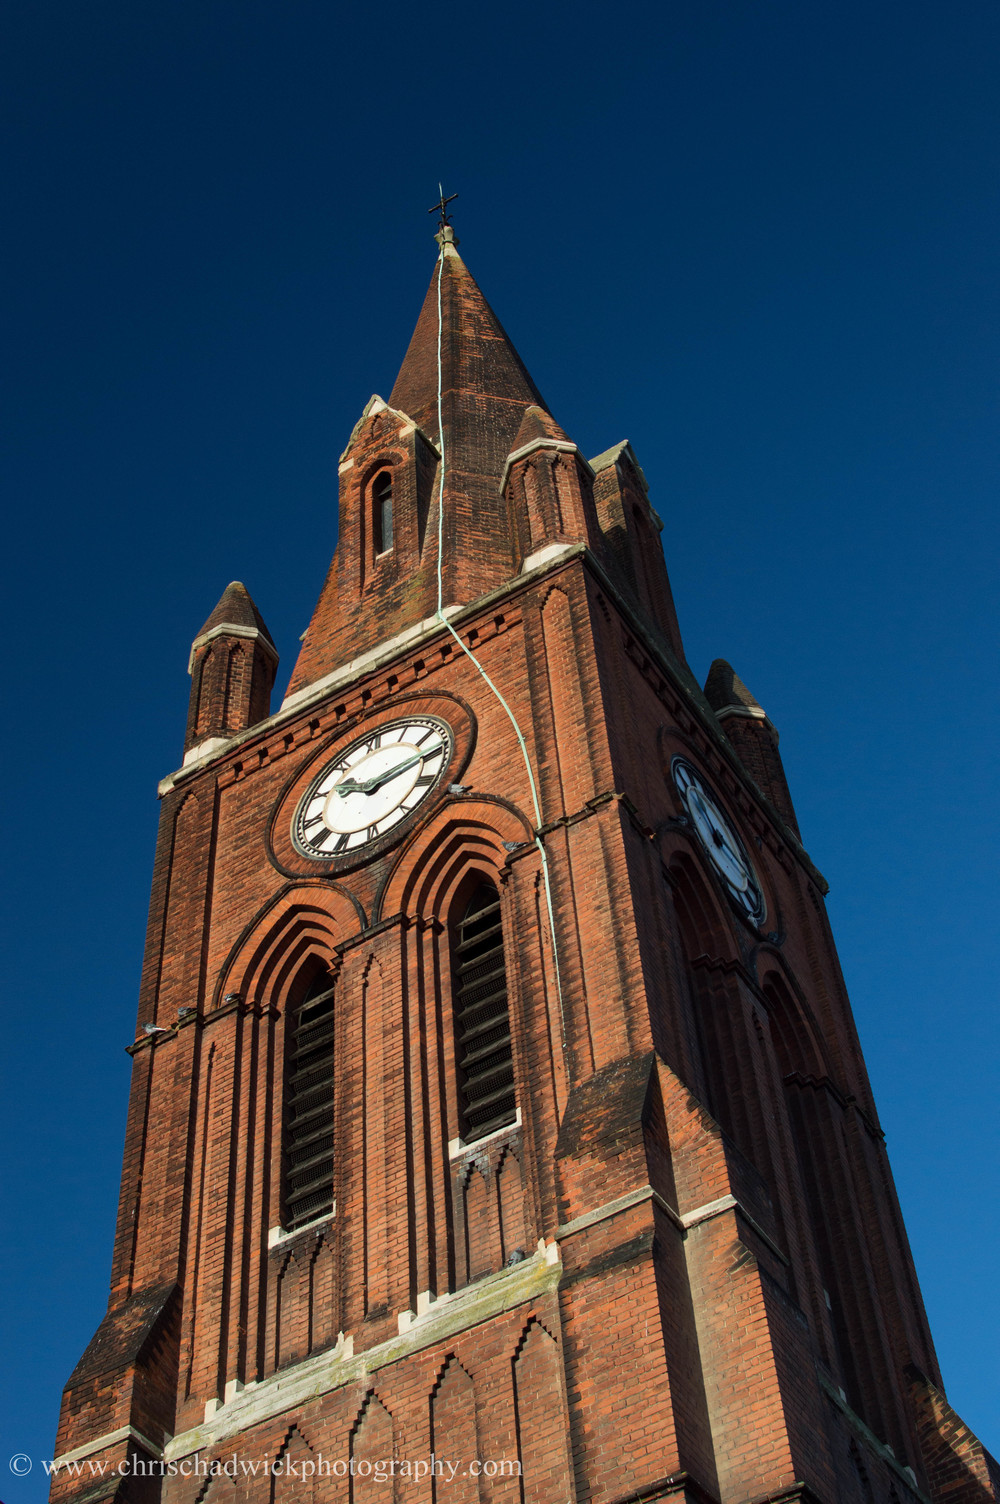 The church tower is much better in a portrait orientation, although neither look great due to the converging verticals.